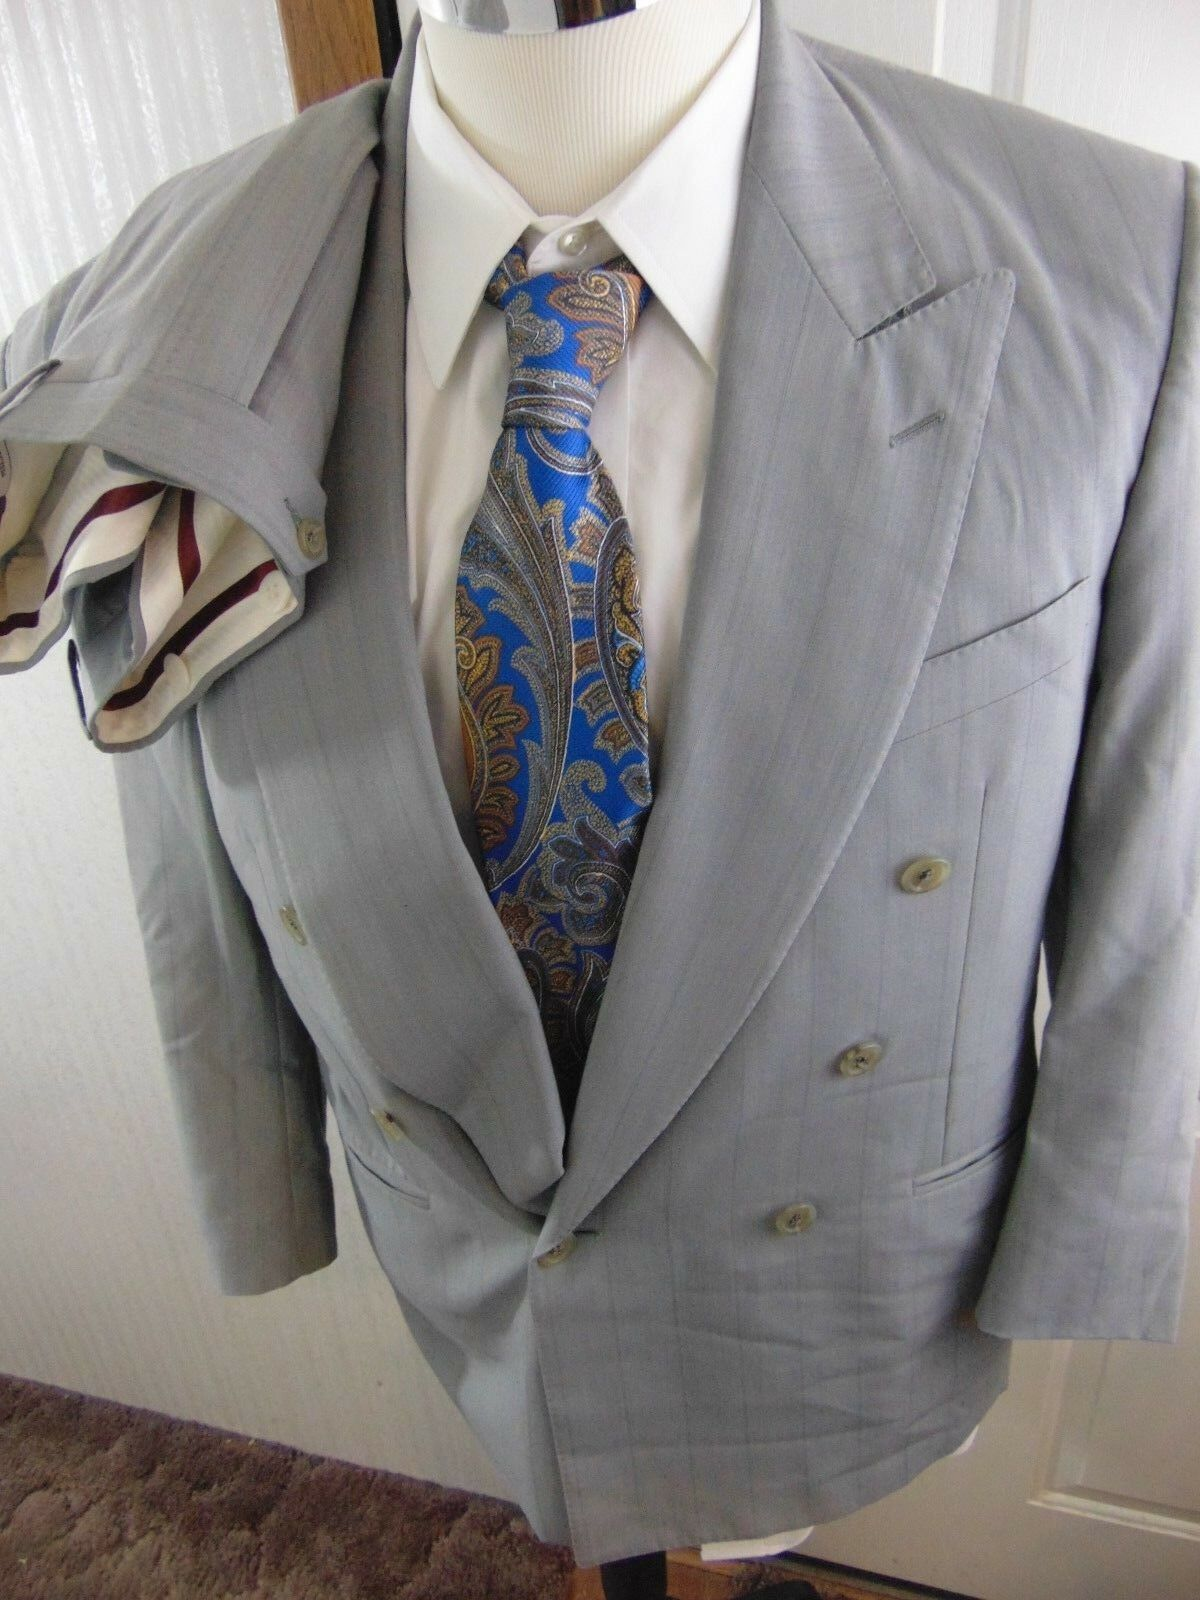 Canali Milano Breasted Uomo Gris Striped Double Breasted Milano Suit Size 38S Waist 34x28 VGUC f31c26